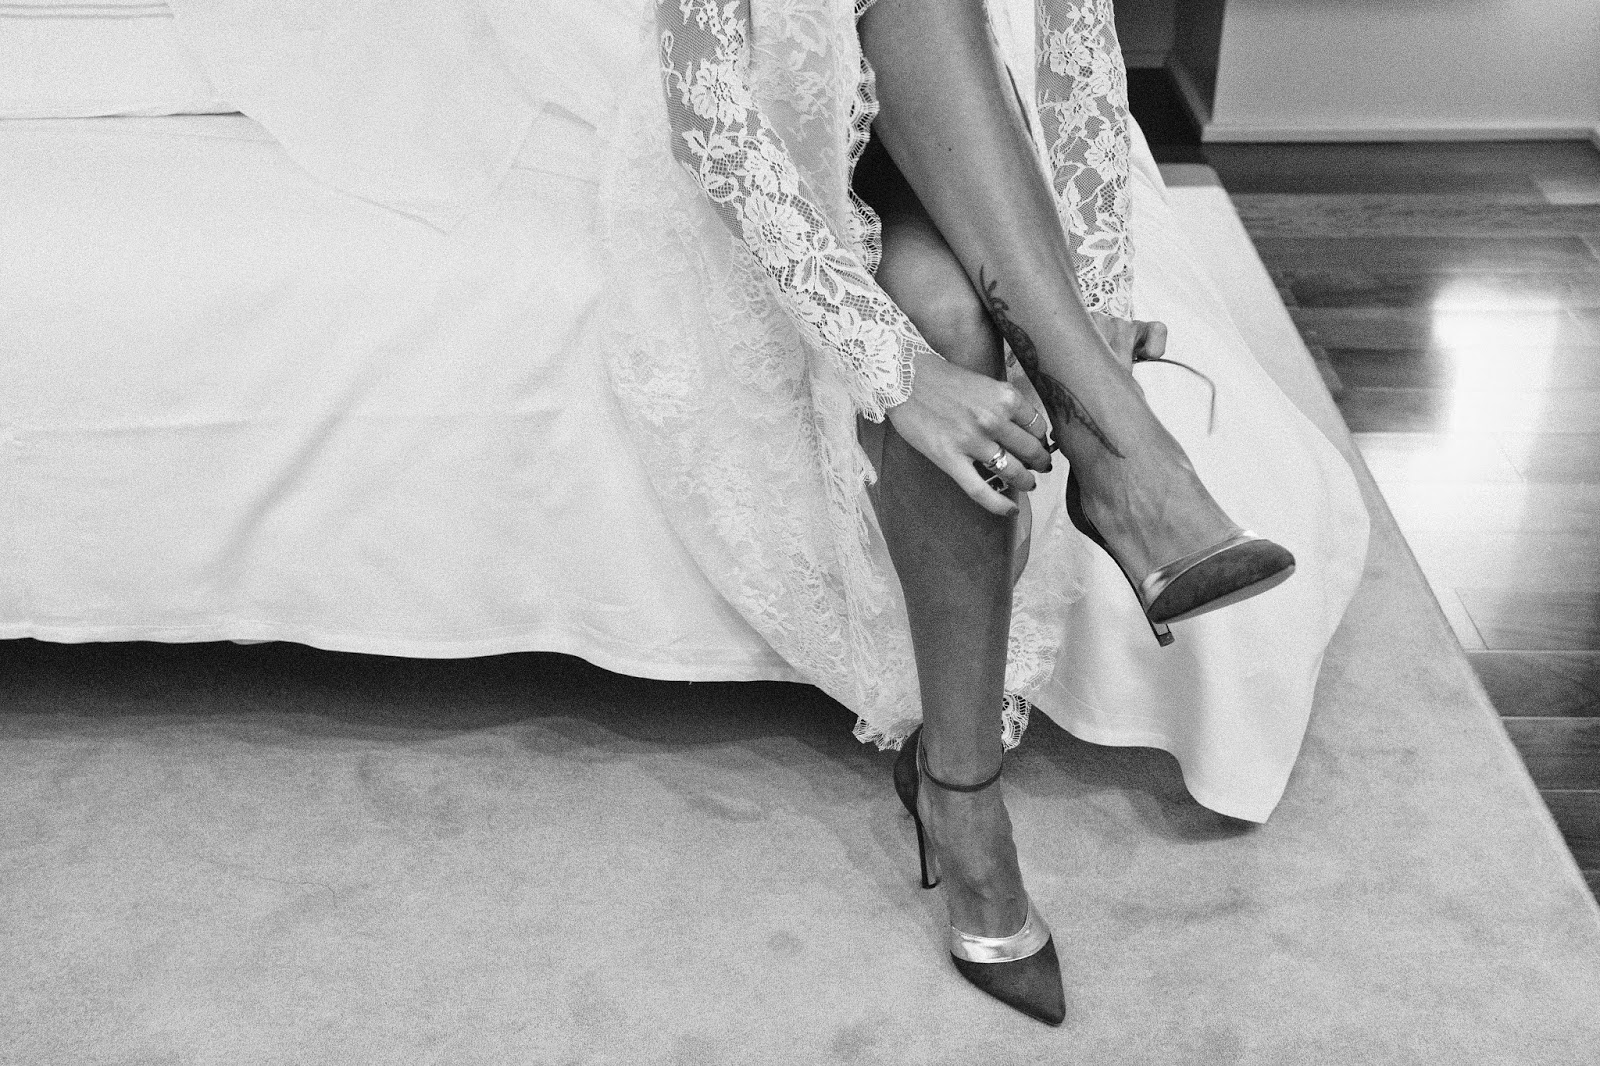 stiletto-ankle-strap-heels-white-lace-dress